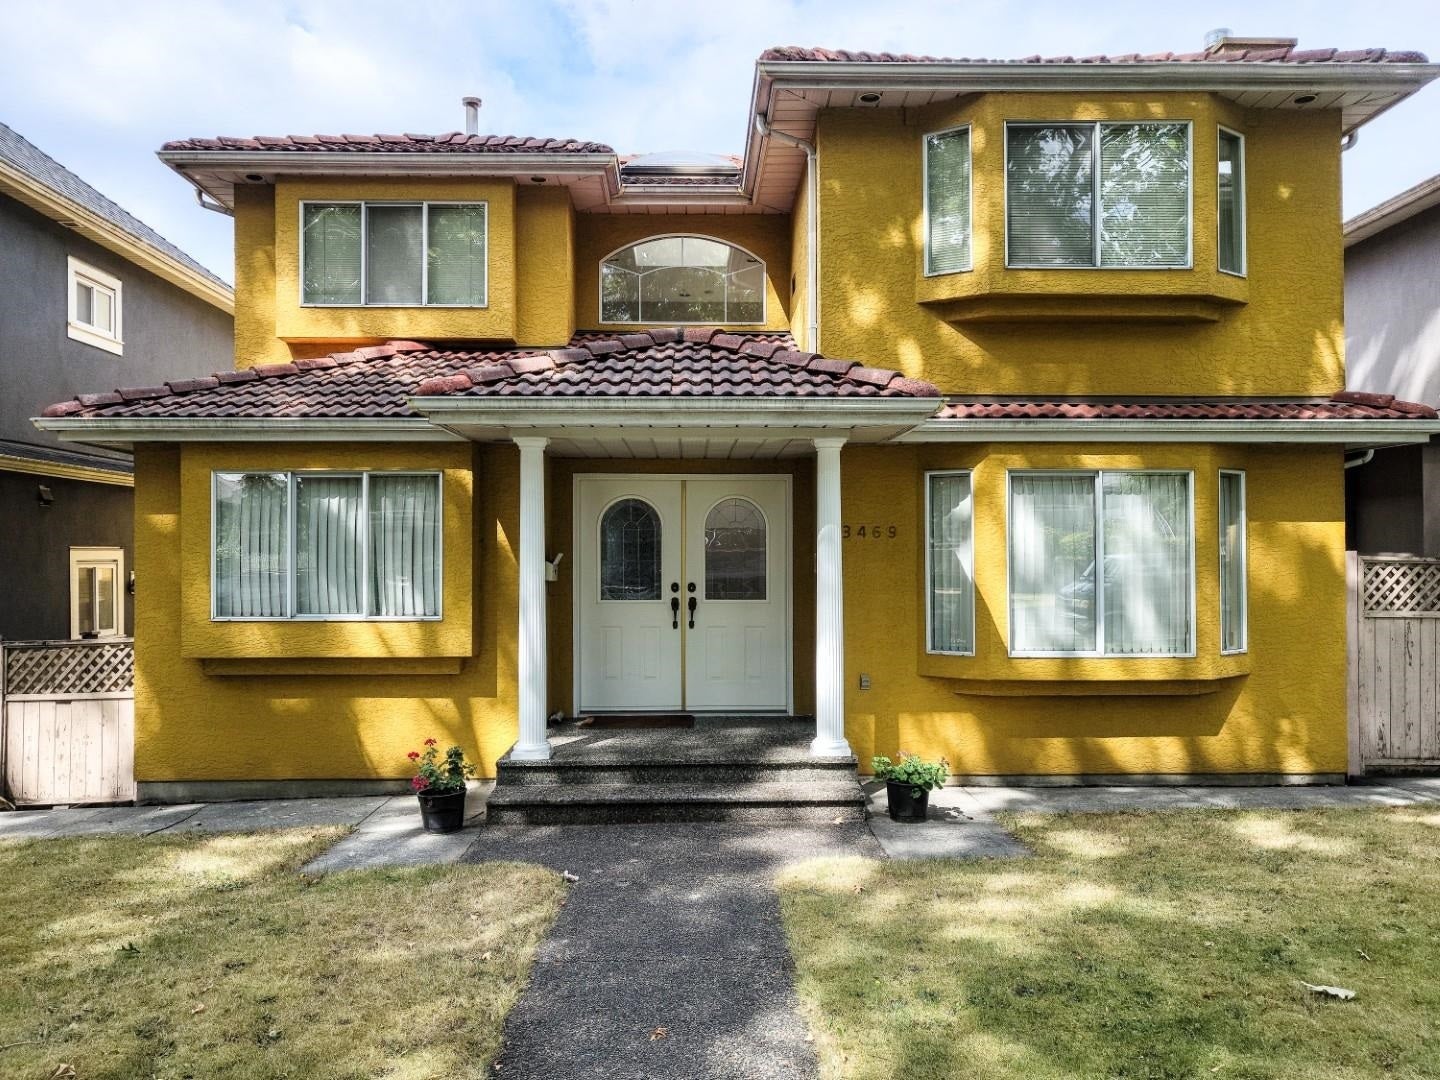 3469 E 22ND AVENUE - Renfrew Heights House/Single Family for sale, 6 Bedrooms (R2612501) - #1